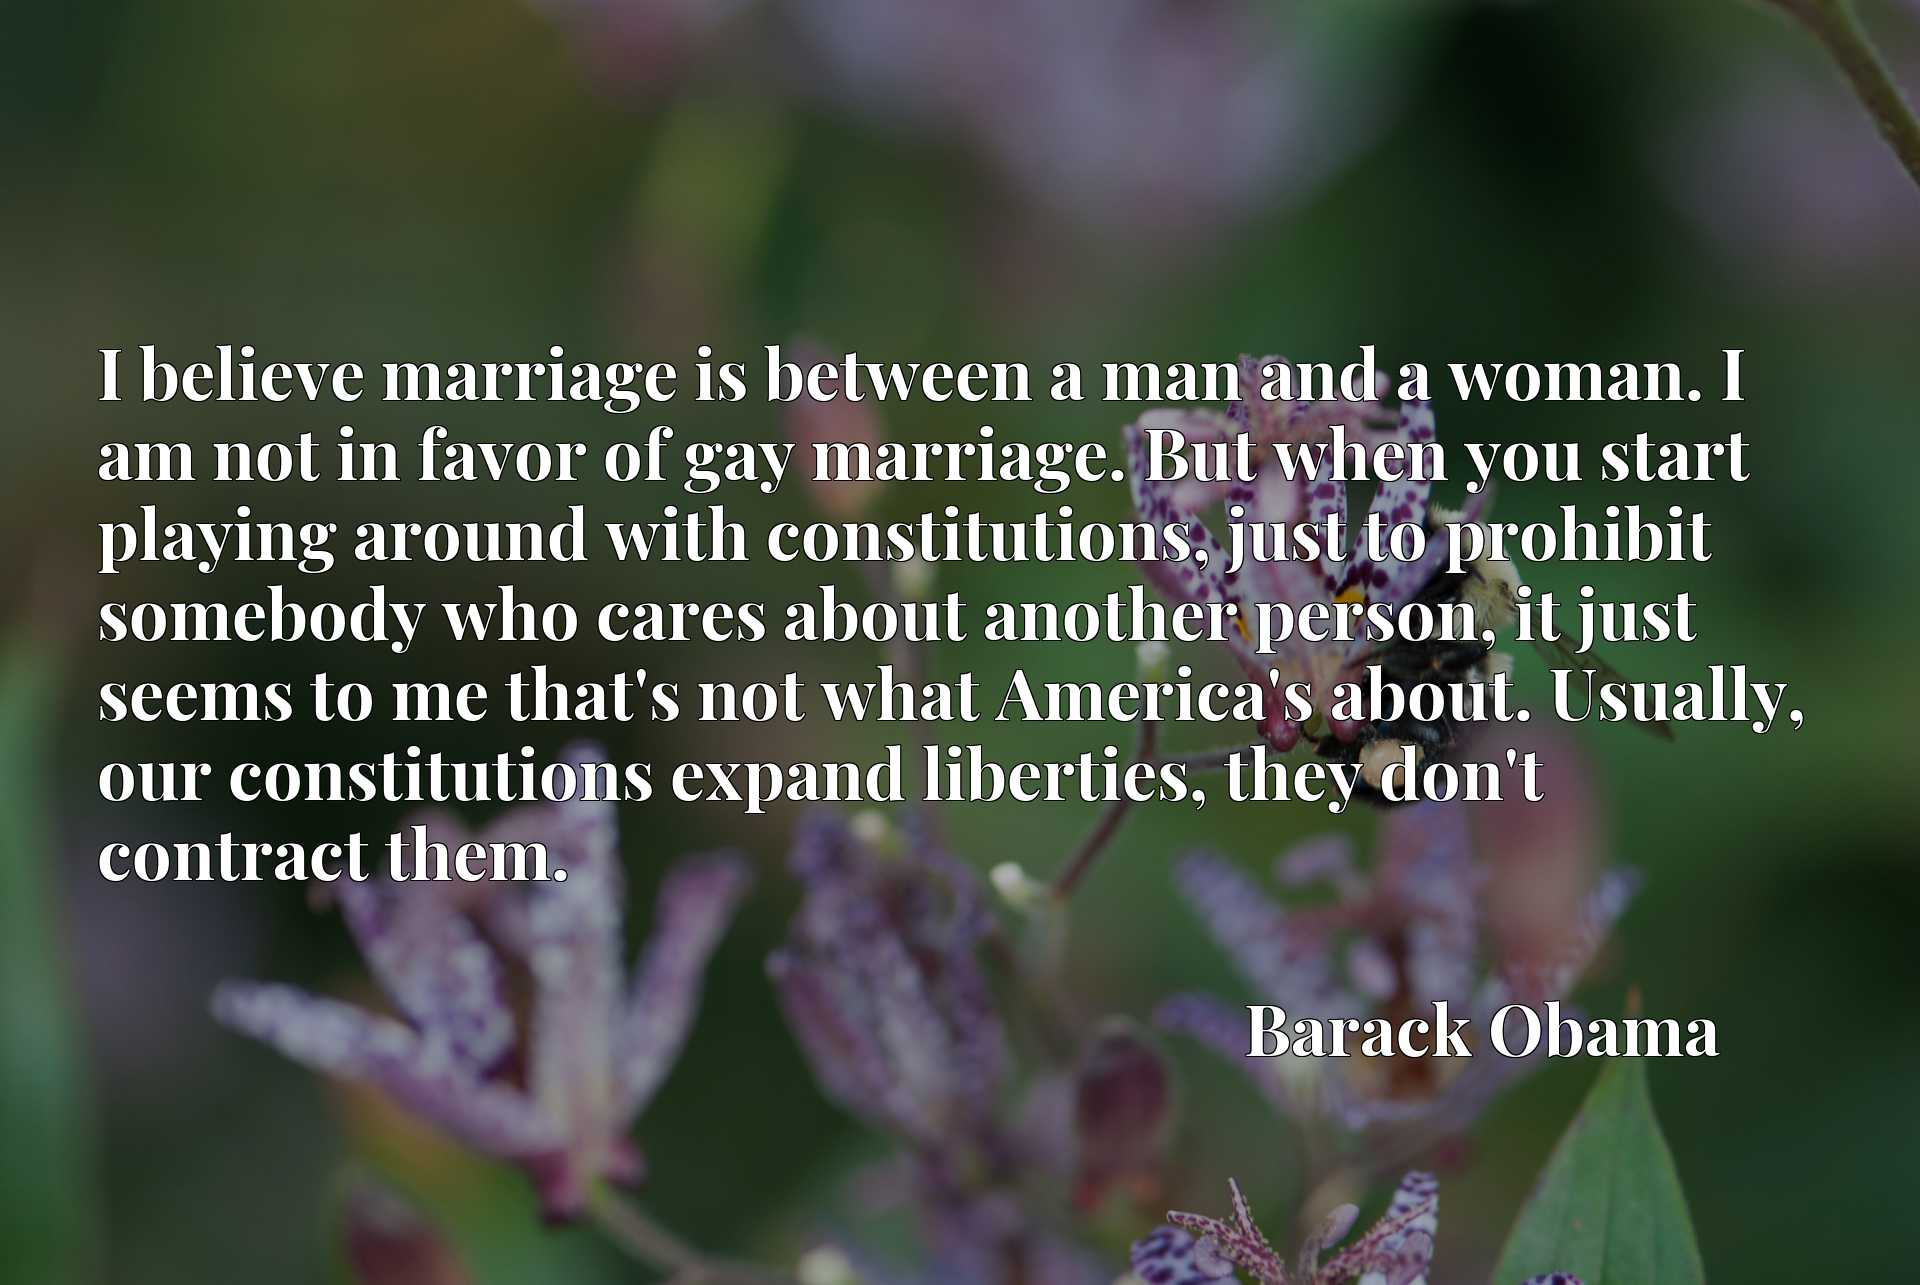 I believe marriage is between a man and a woman. I am not in favor of gay marriage. But when you start playing around with constitutions, just to prohibit somebody who cares about another person, it just seems to me that's not what America's about. Usually, our constitutions expand liberties, they don't contract them.